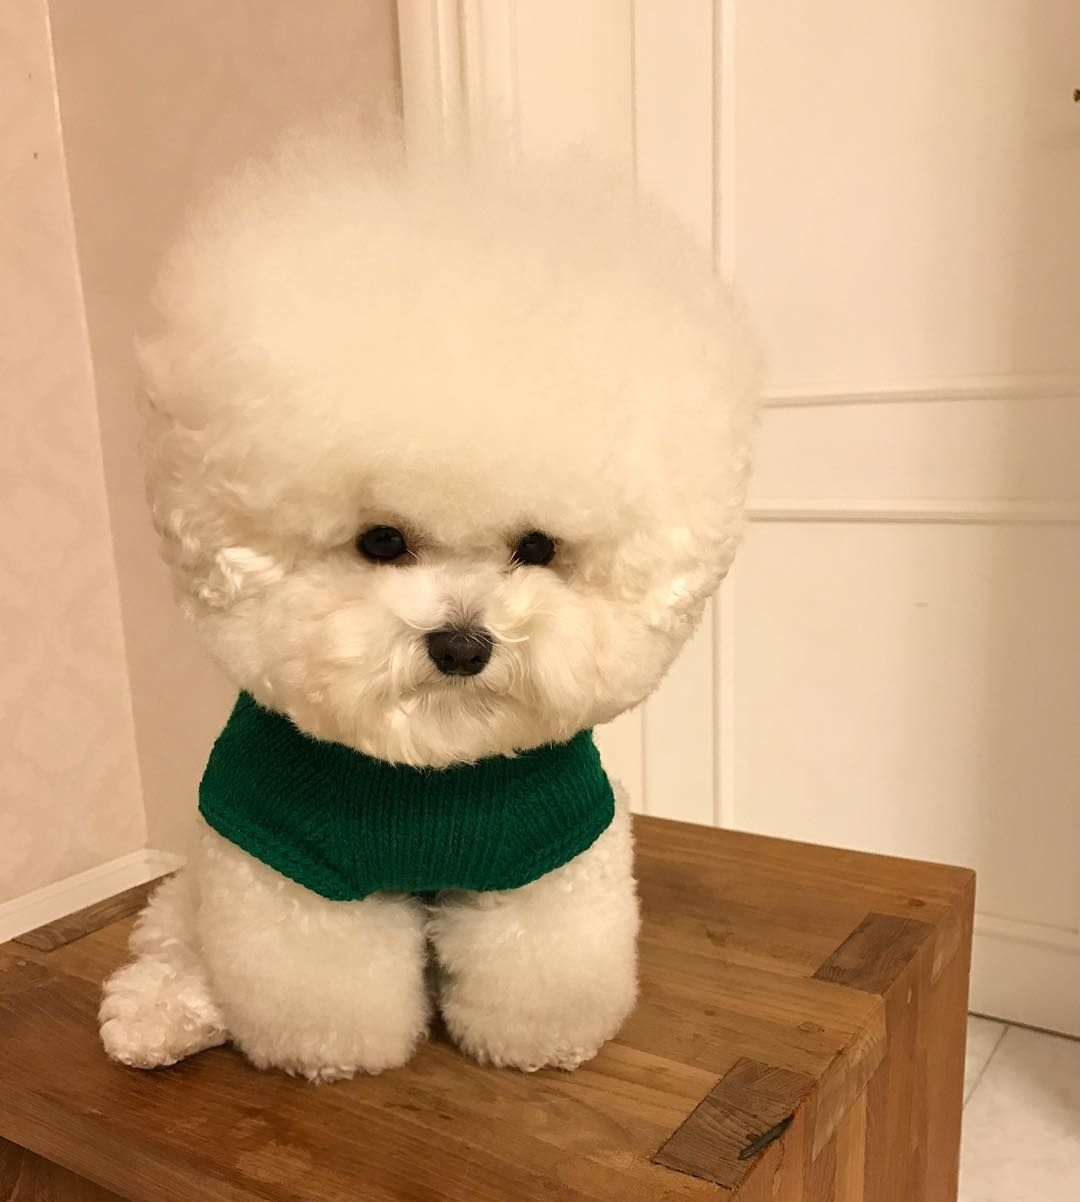 Rock Hudson From The Cleveland Show Lol Bichon Dog Cute Dogs Cute Animals